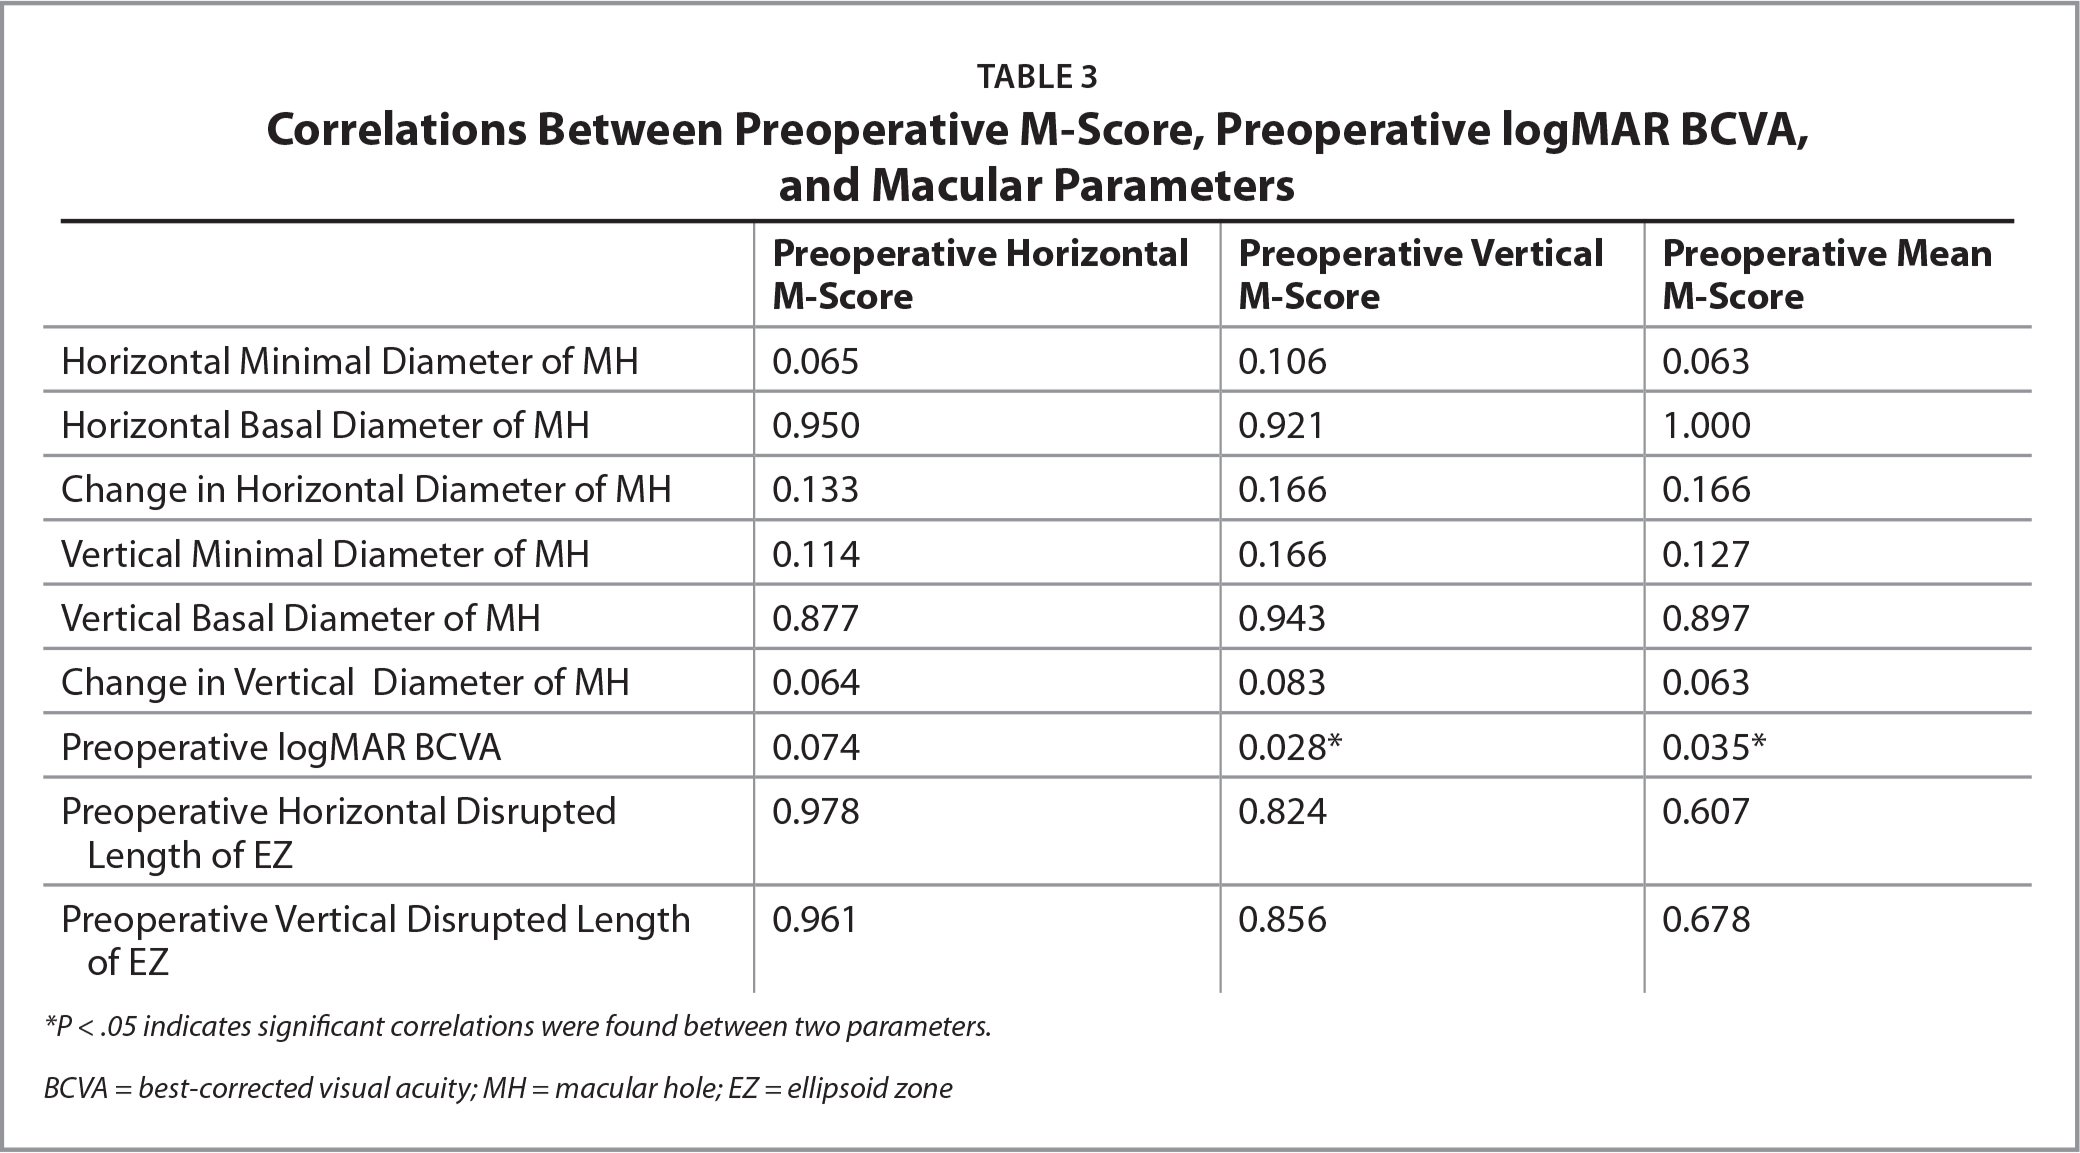 Correlations Between Preoperative M-Score, Preoperative logMAR BCVA, and Macular Parameters